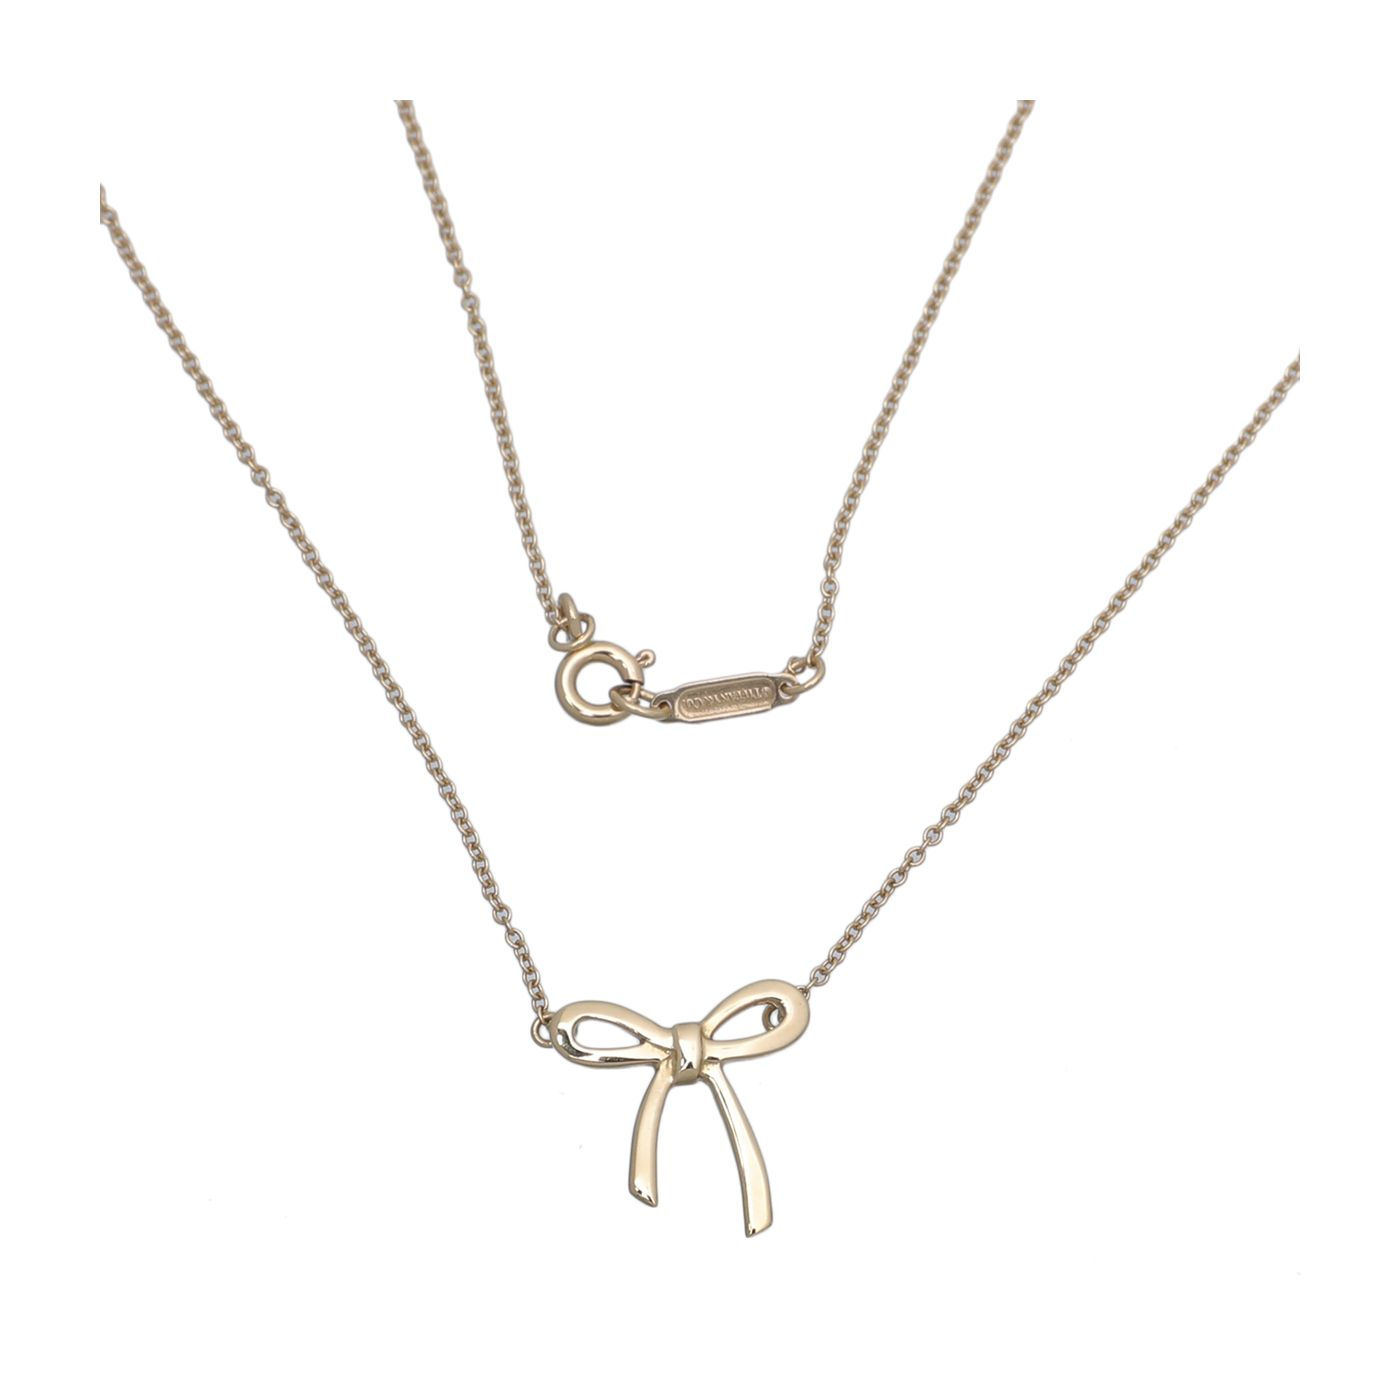 Tiffany & Co 18K Yellow Gold Bow Pendant Necklace